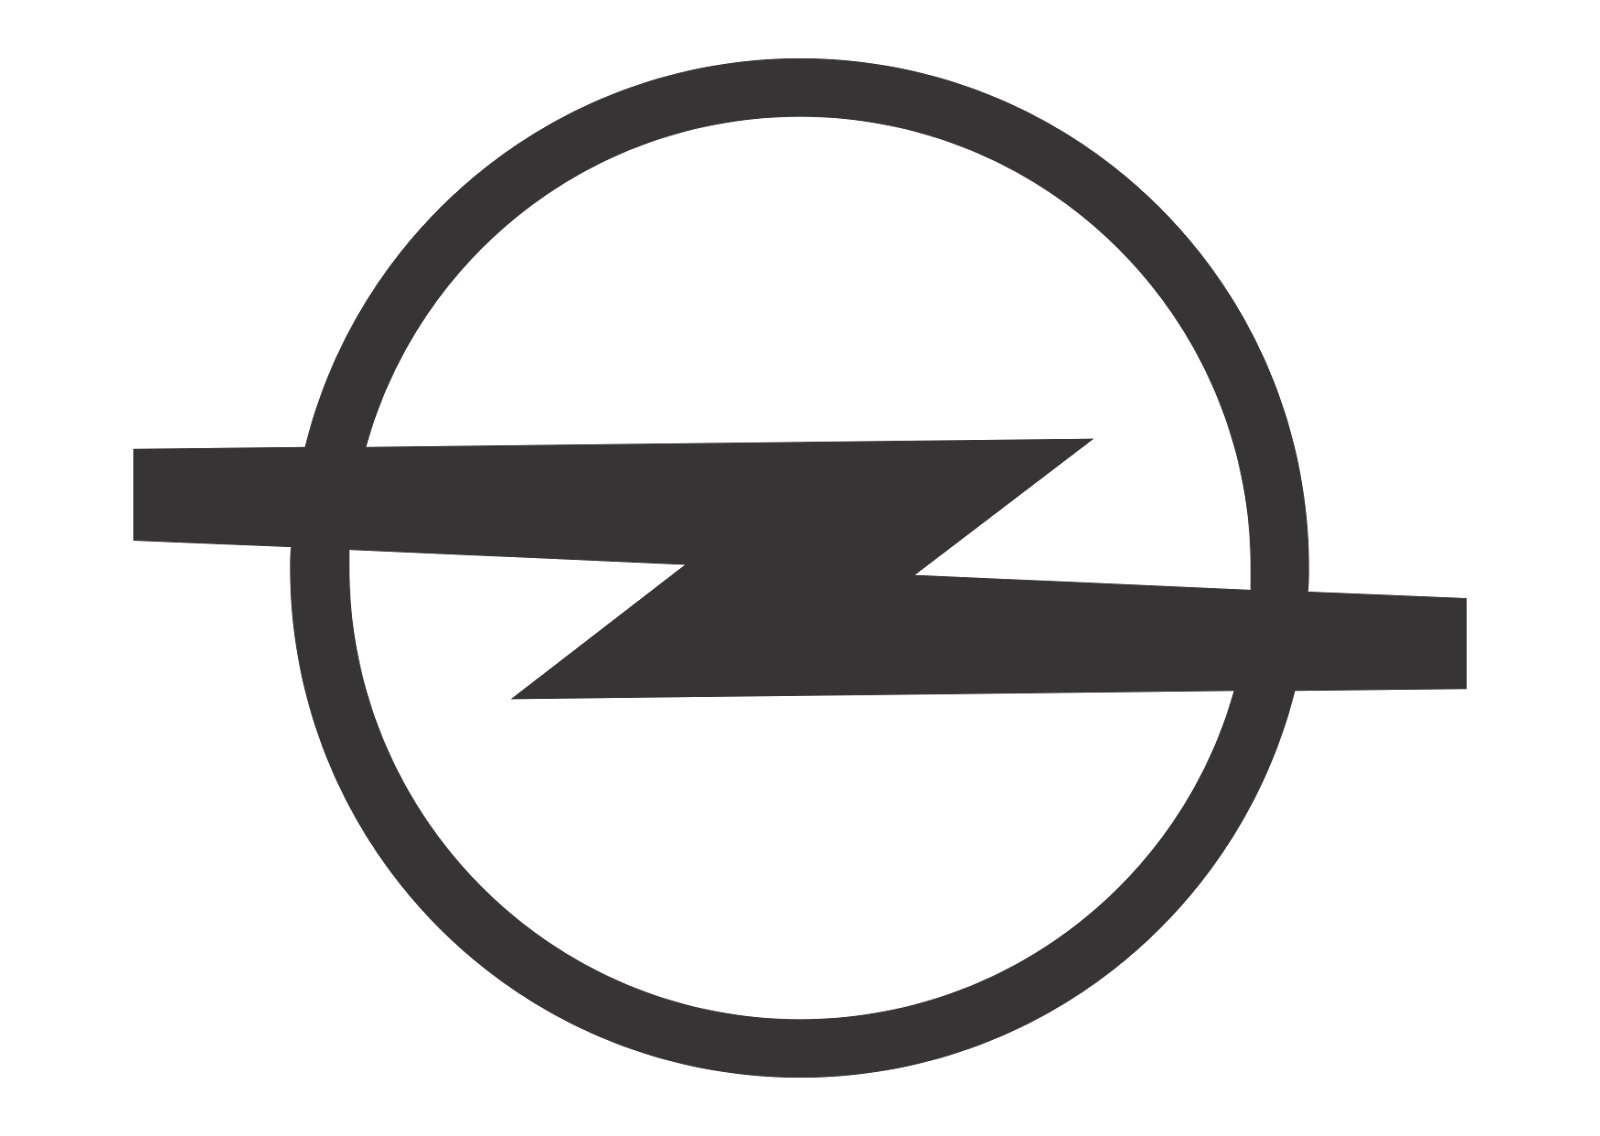 Opel Logo Vector Opel Design Black White Logo